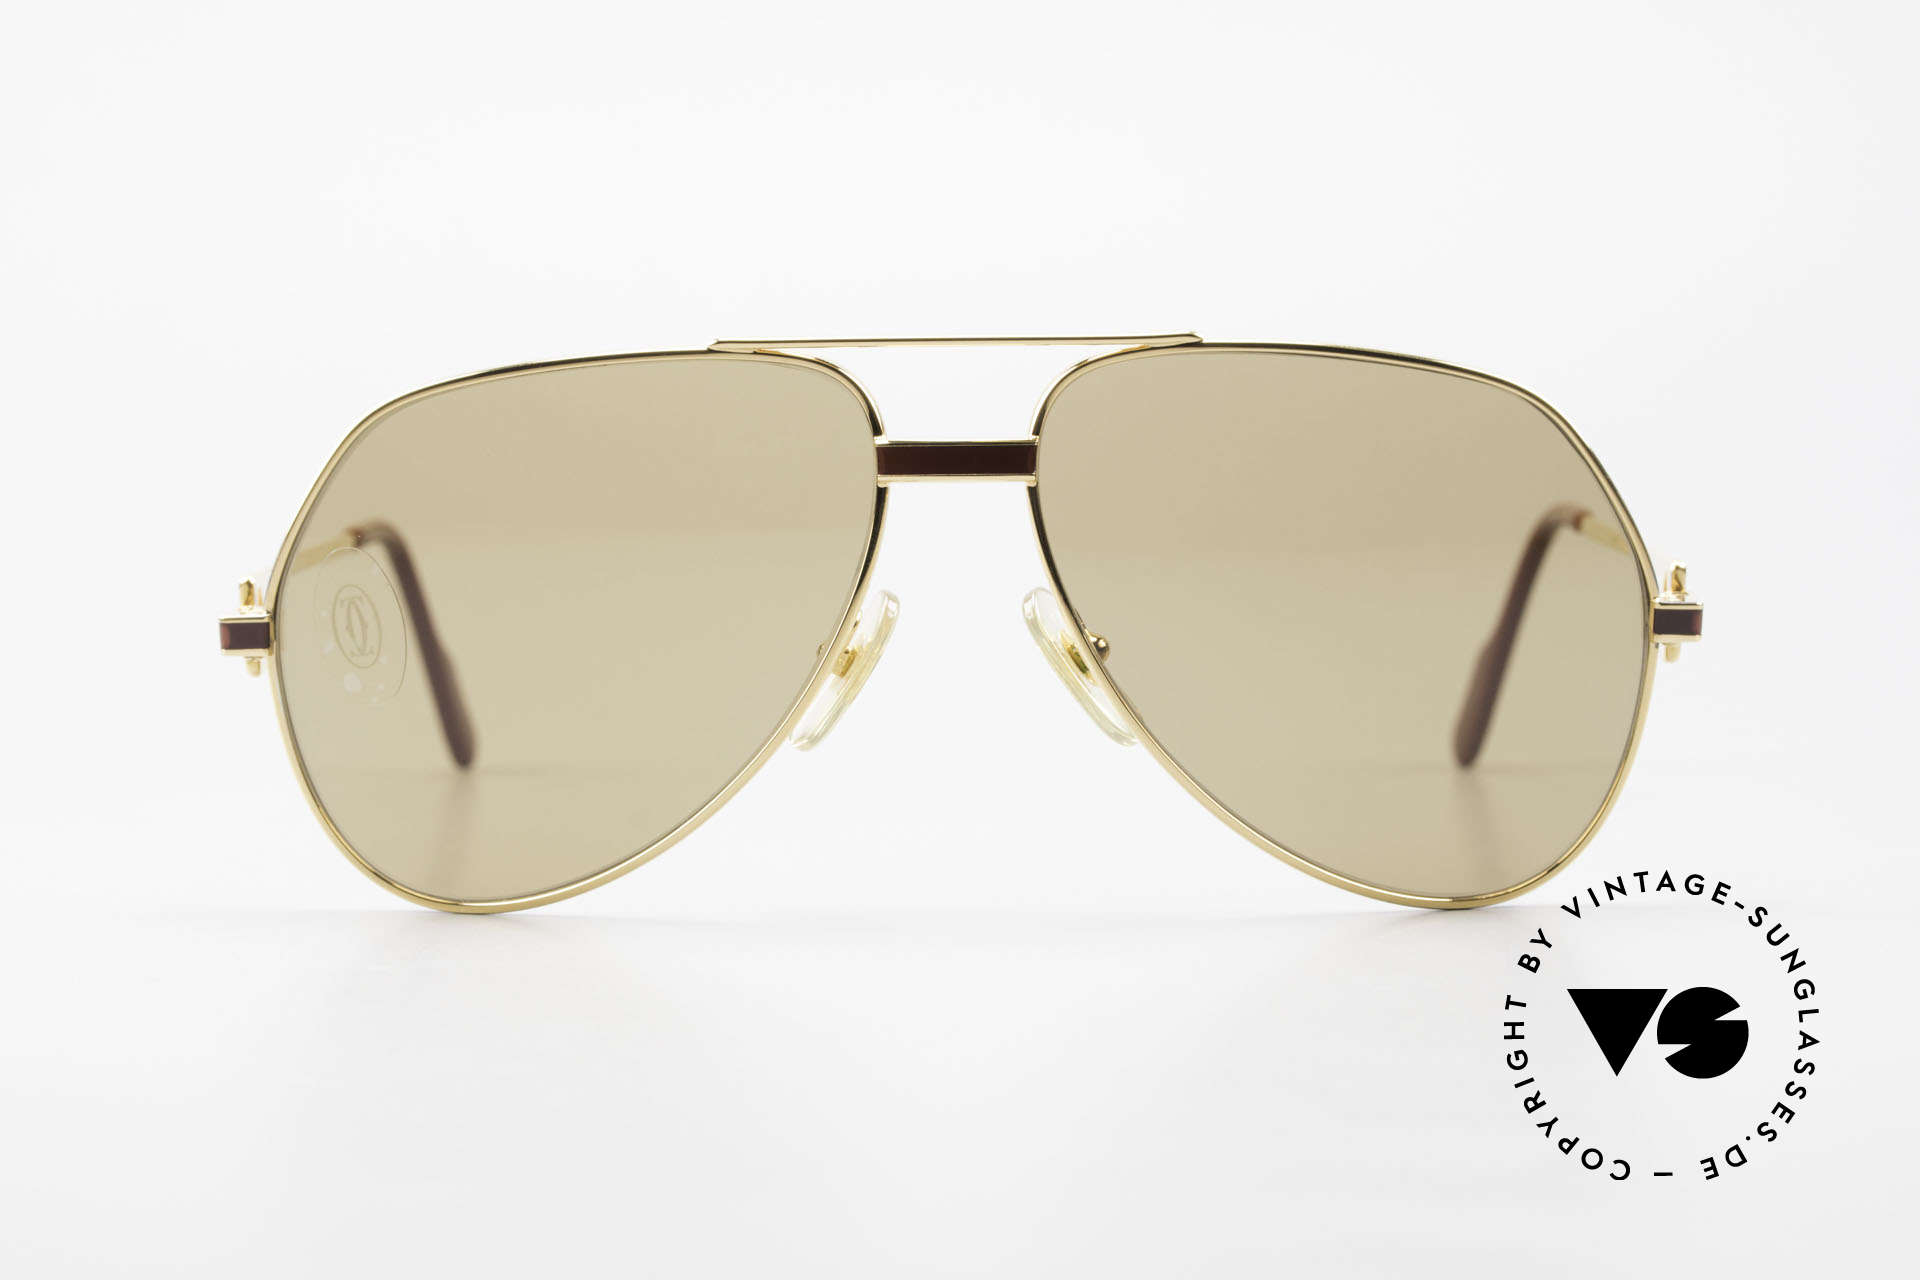 """Cartier Vendome Laque - M Mystic Cartier Mineral Lenses, mod. """"Vendome"""" was launched in 1983 & made till 1997, Made for Men"""